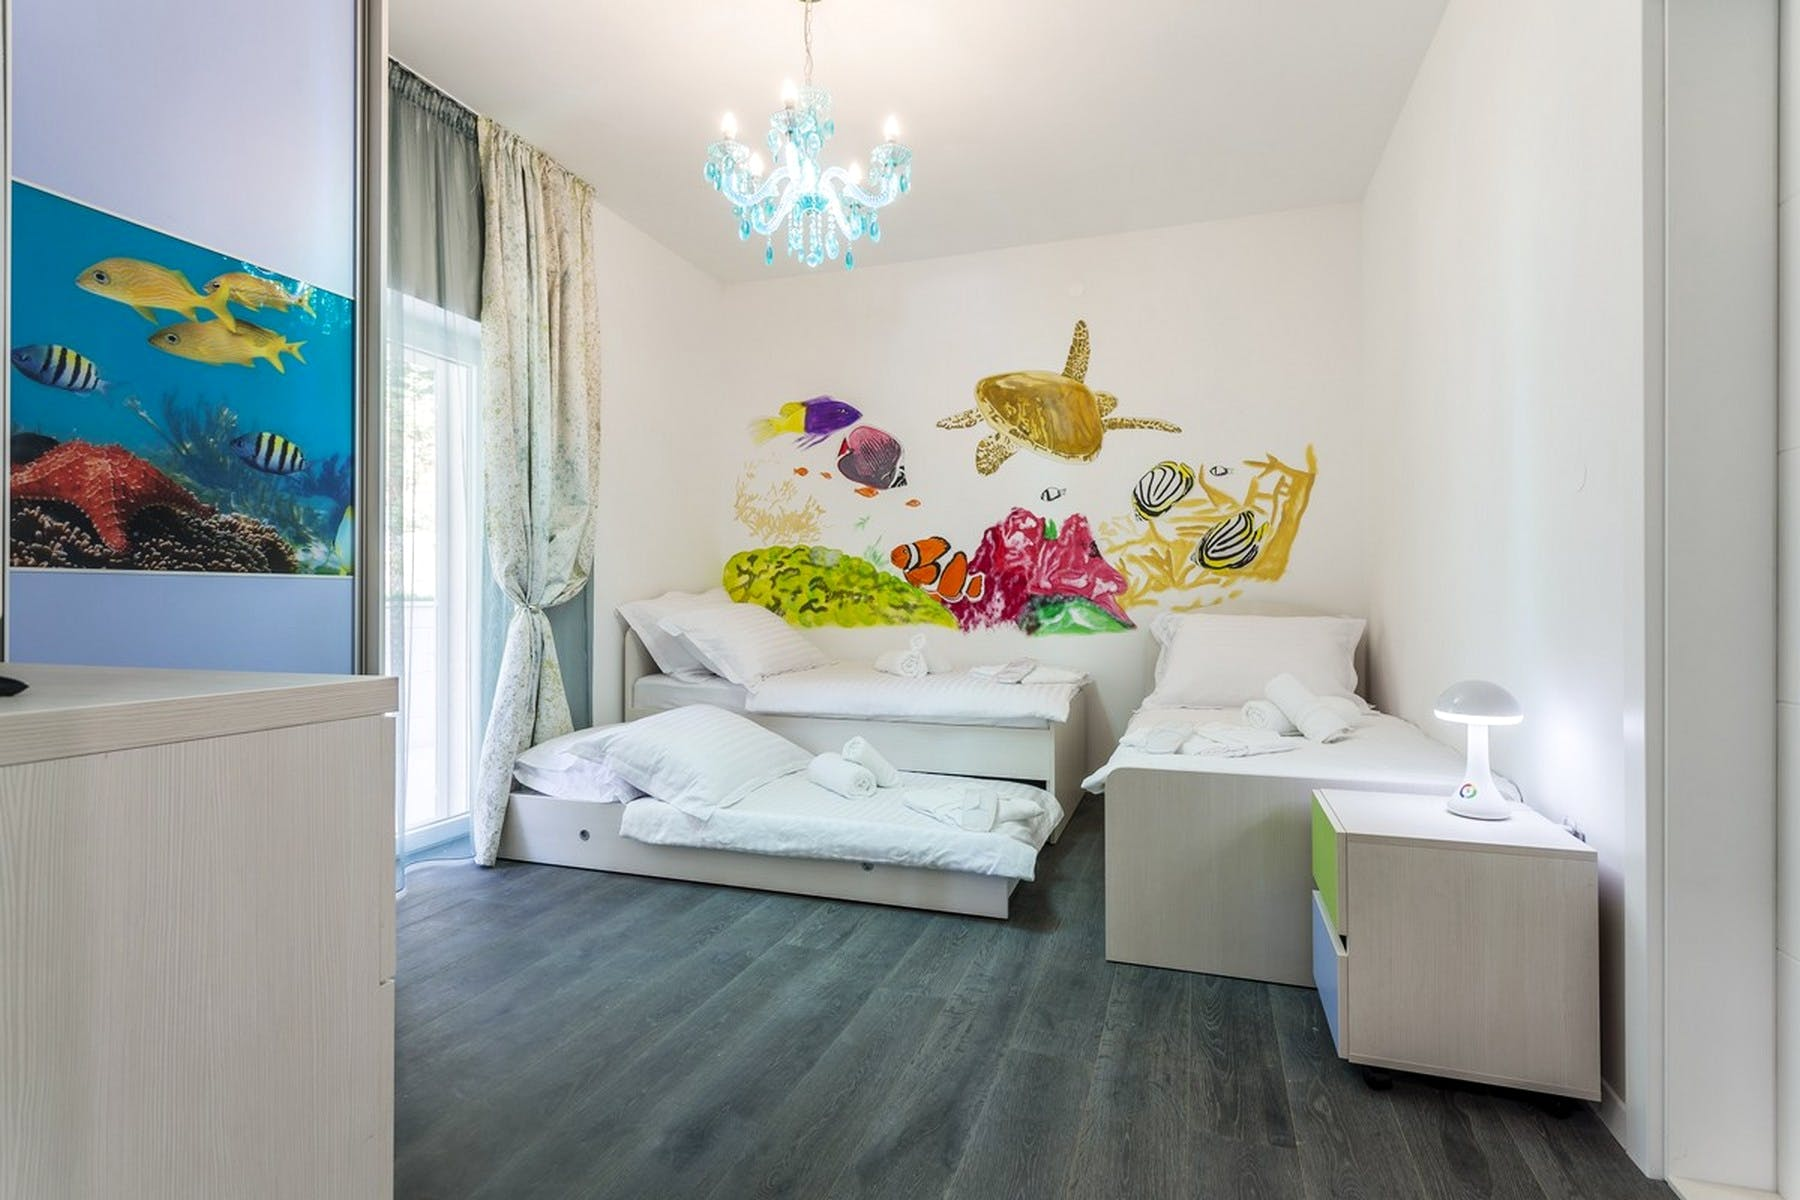 A bedroom for three with aquamarine motives